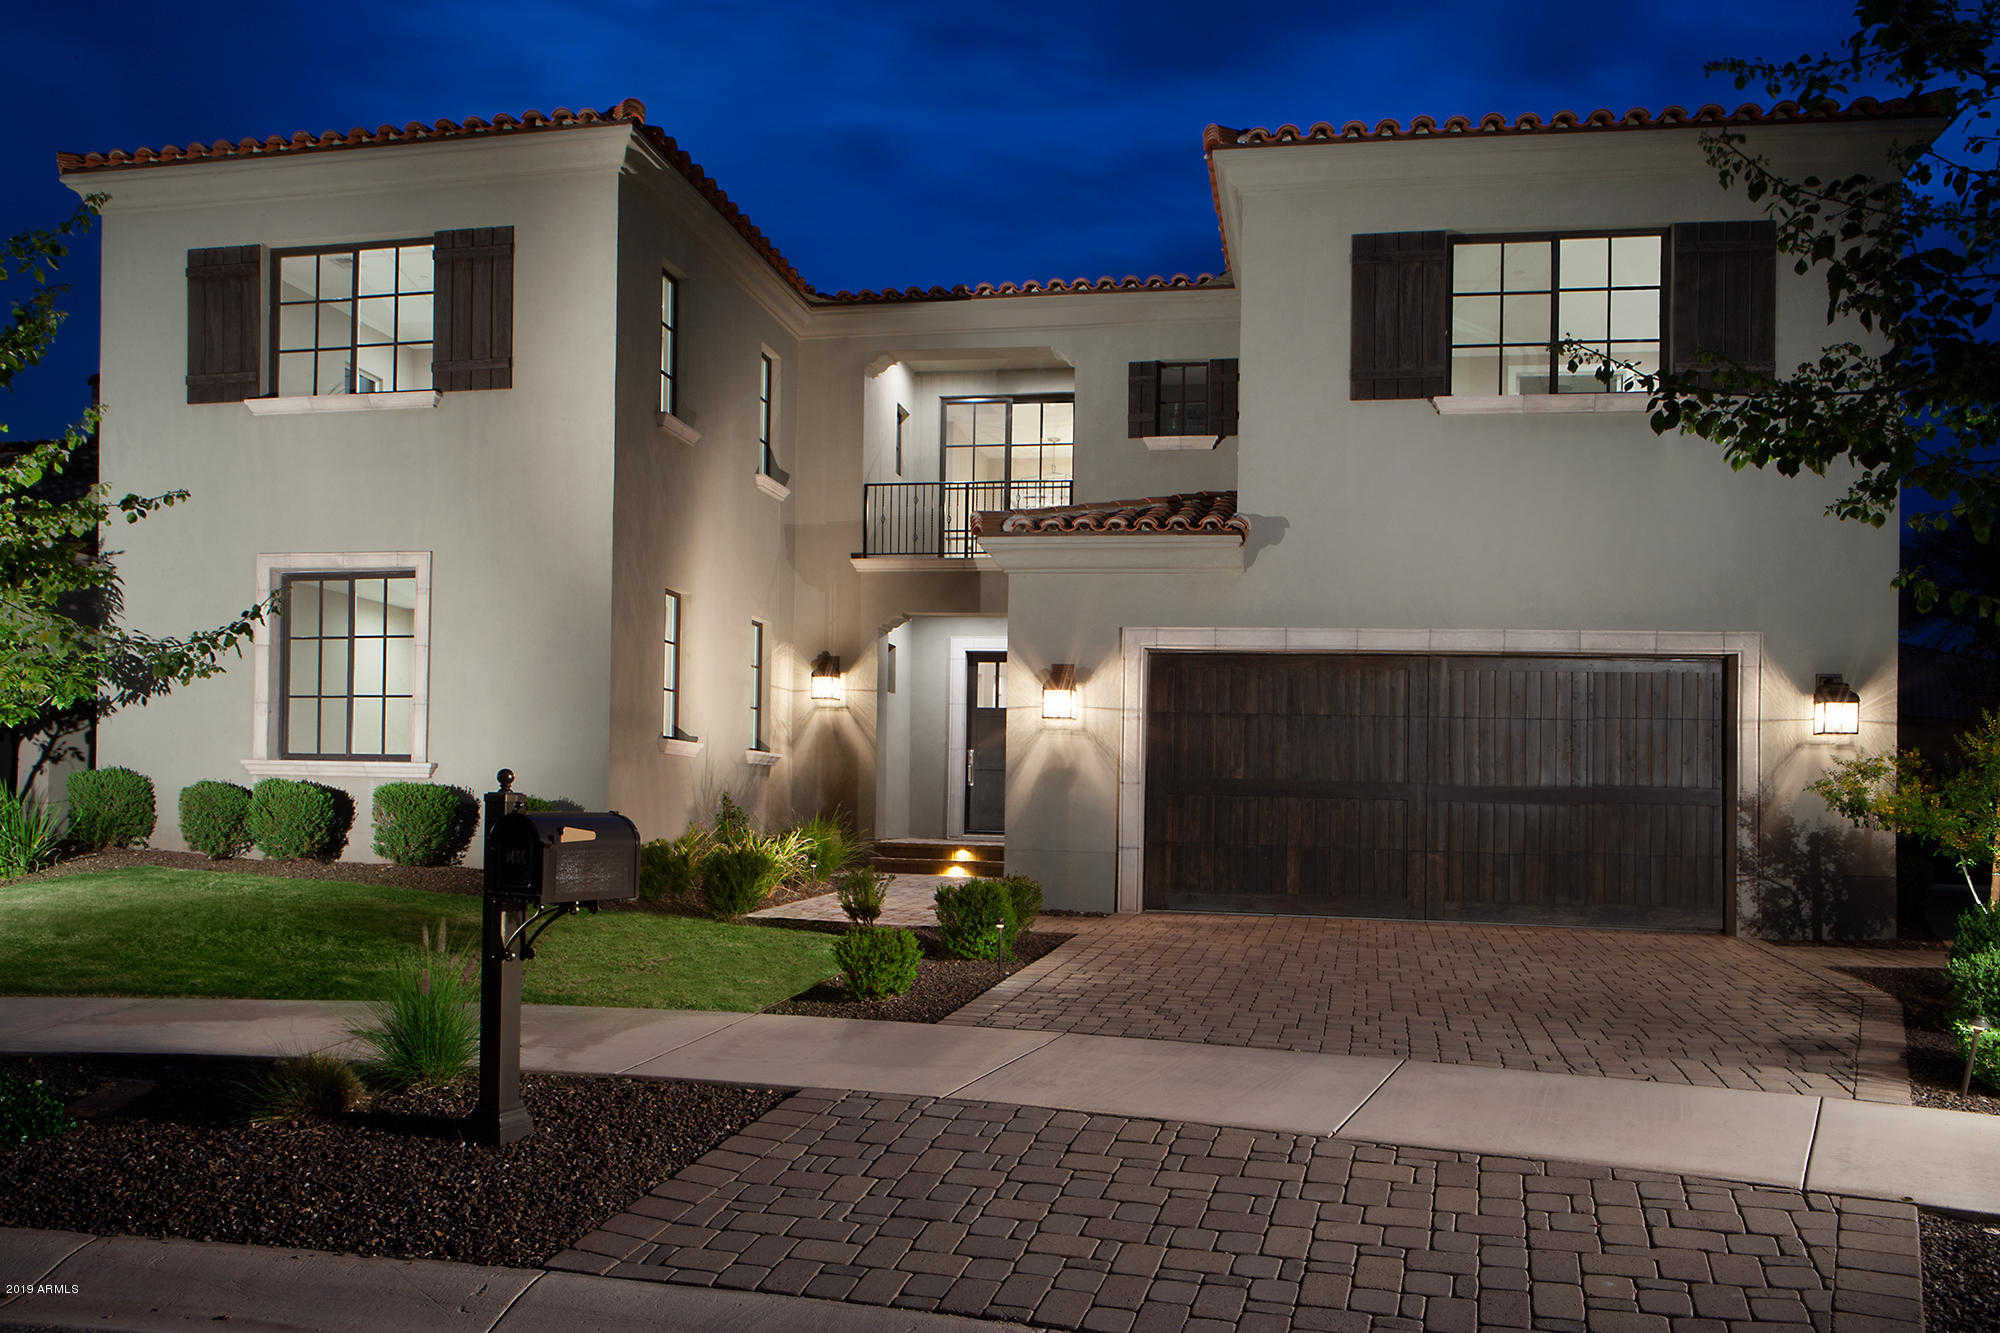 $1,395,000 - 5Br/7Ba - Home for Sale in Legacy Cove, Scottsdale